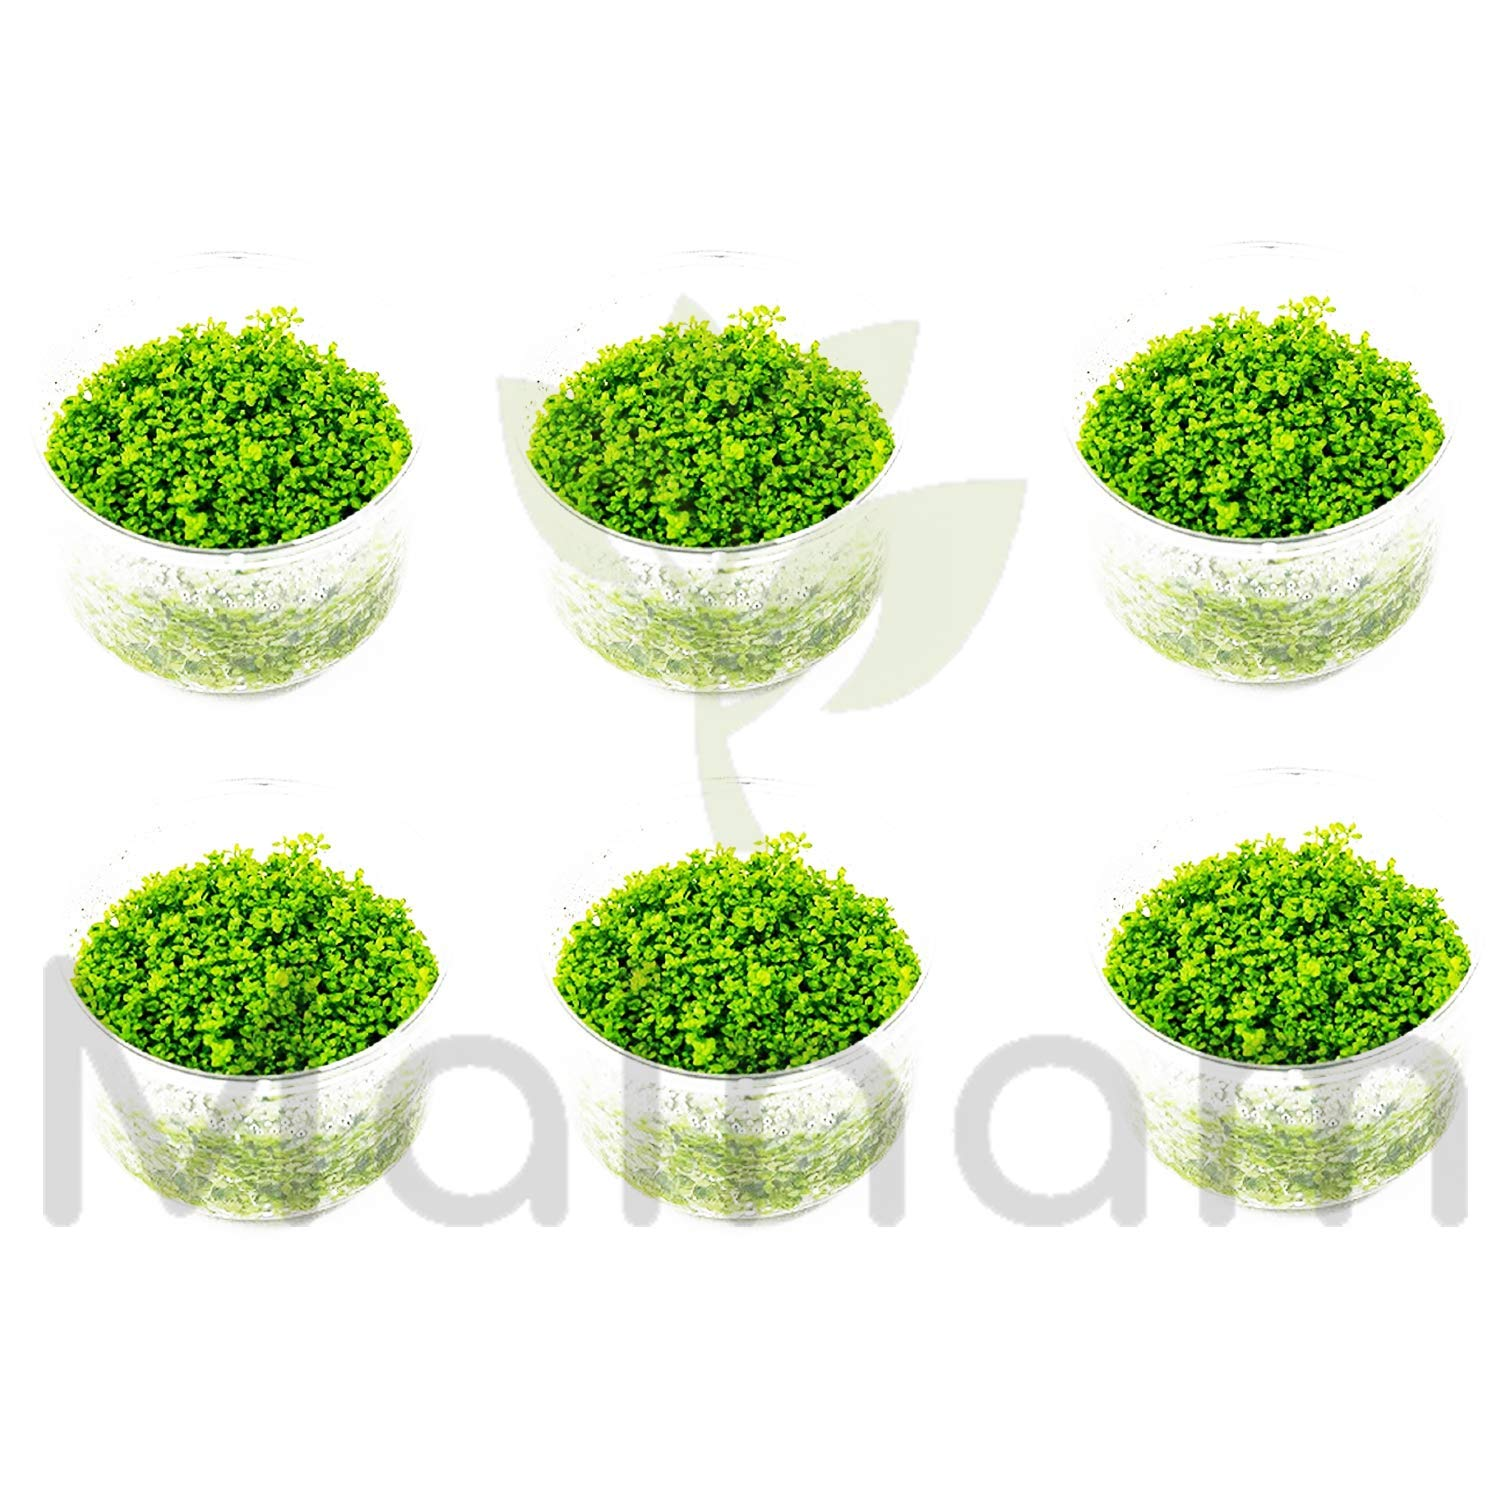 Mainam (6 Cup) Dwarf Baby Tears Carpet Live Aquarium Plants Tissue Culture for Freshwater Aquatic Plant Tank by Mainam